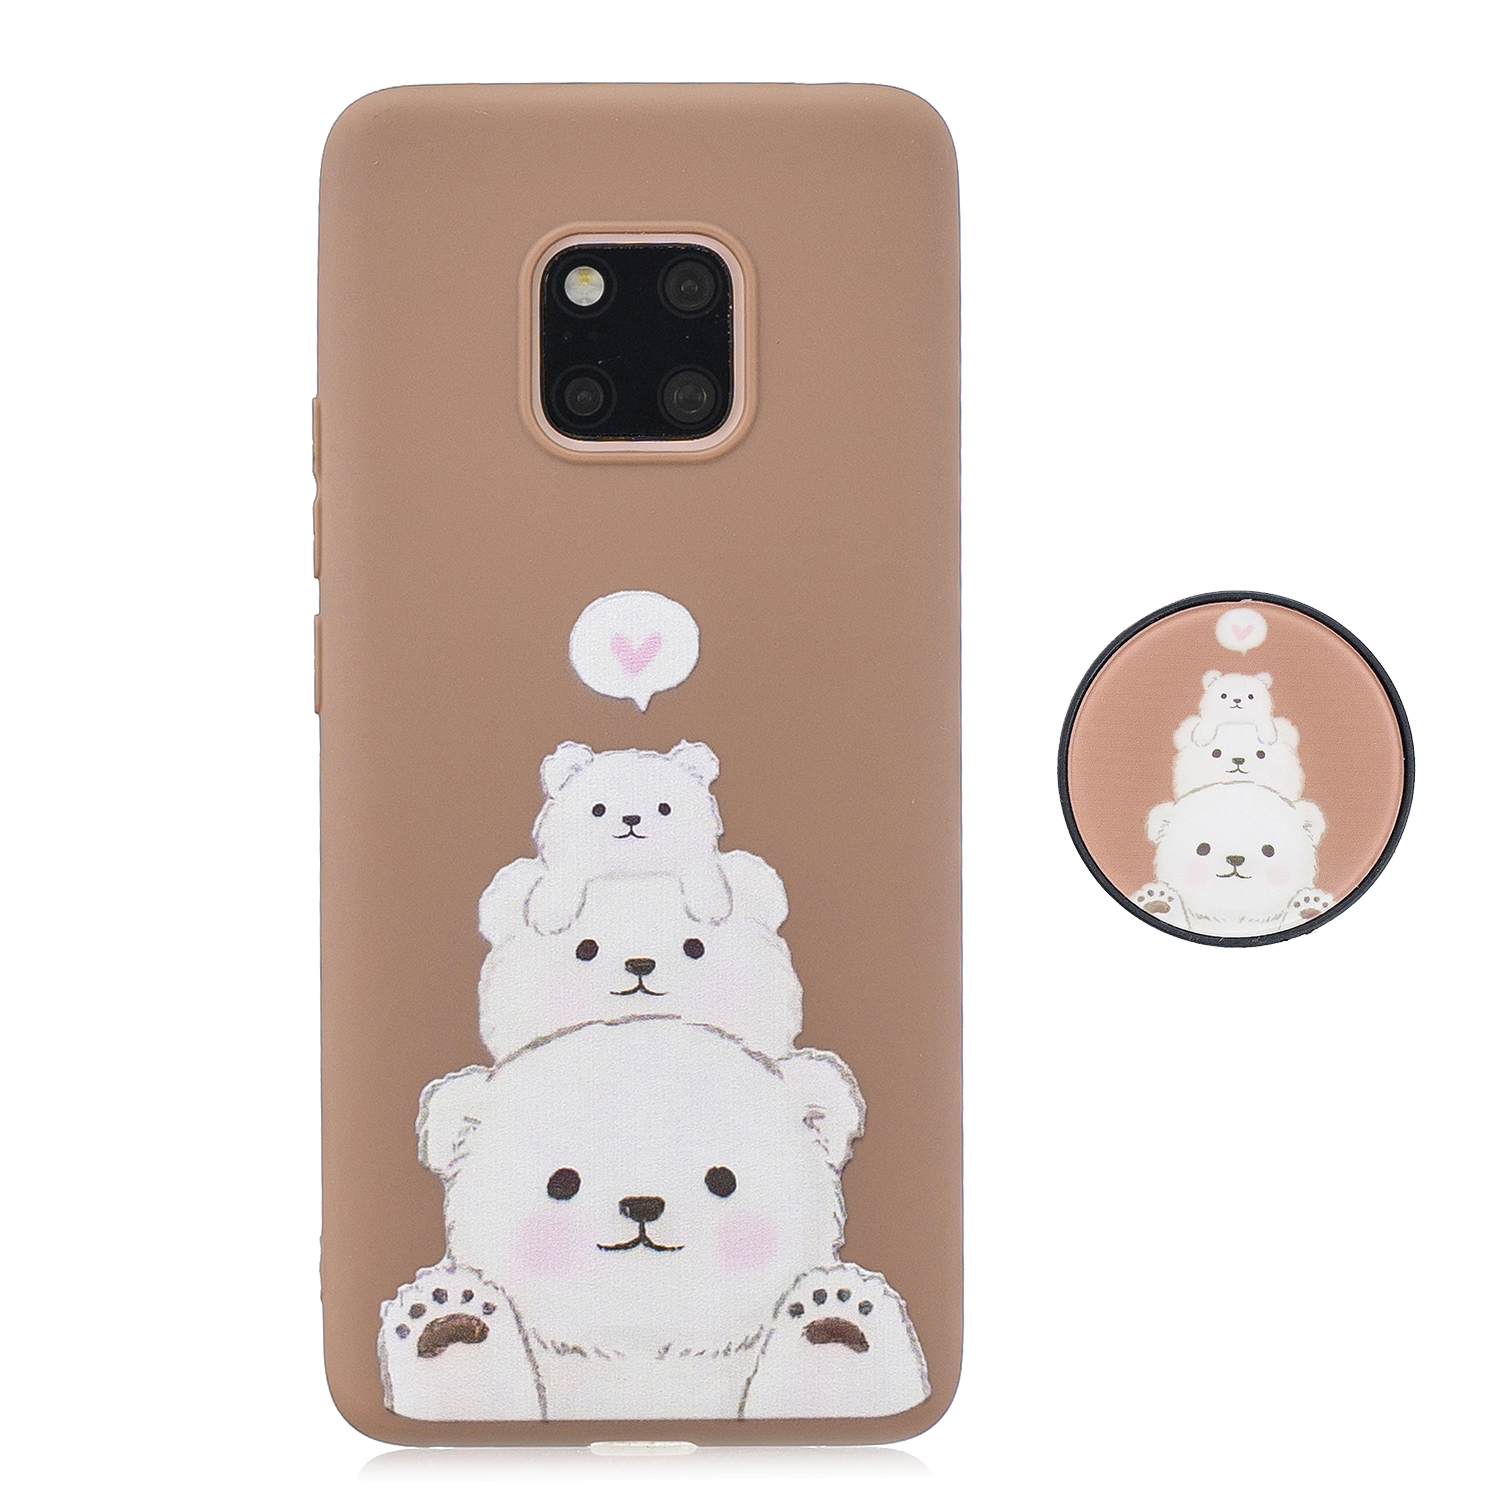 For HUAWEI MATE 20 pro Pure Color Phone Cover Cute Cartoon Phone Case Lightweight Soft TPU Phone Case with Matching Pattern Adjustable Bracket 3